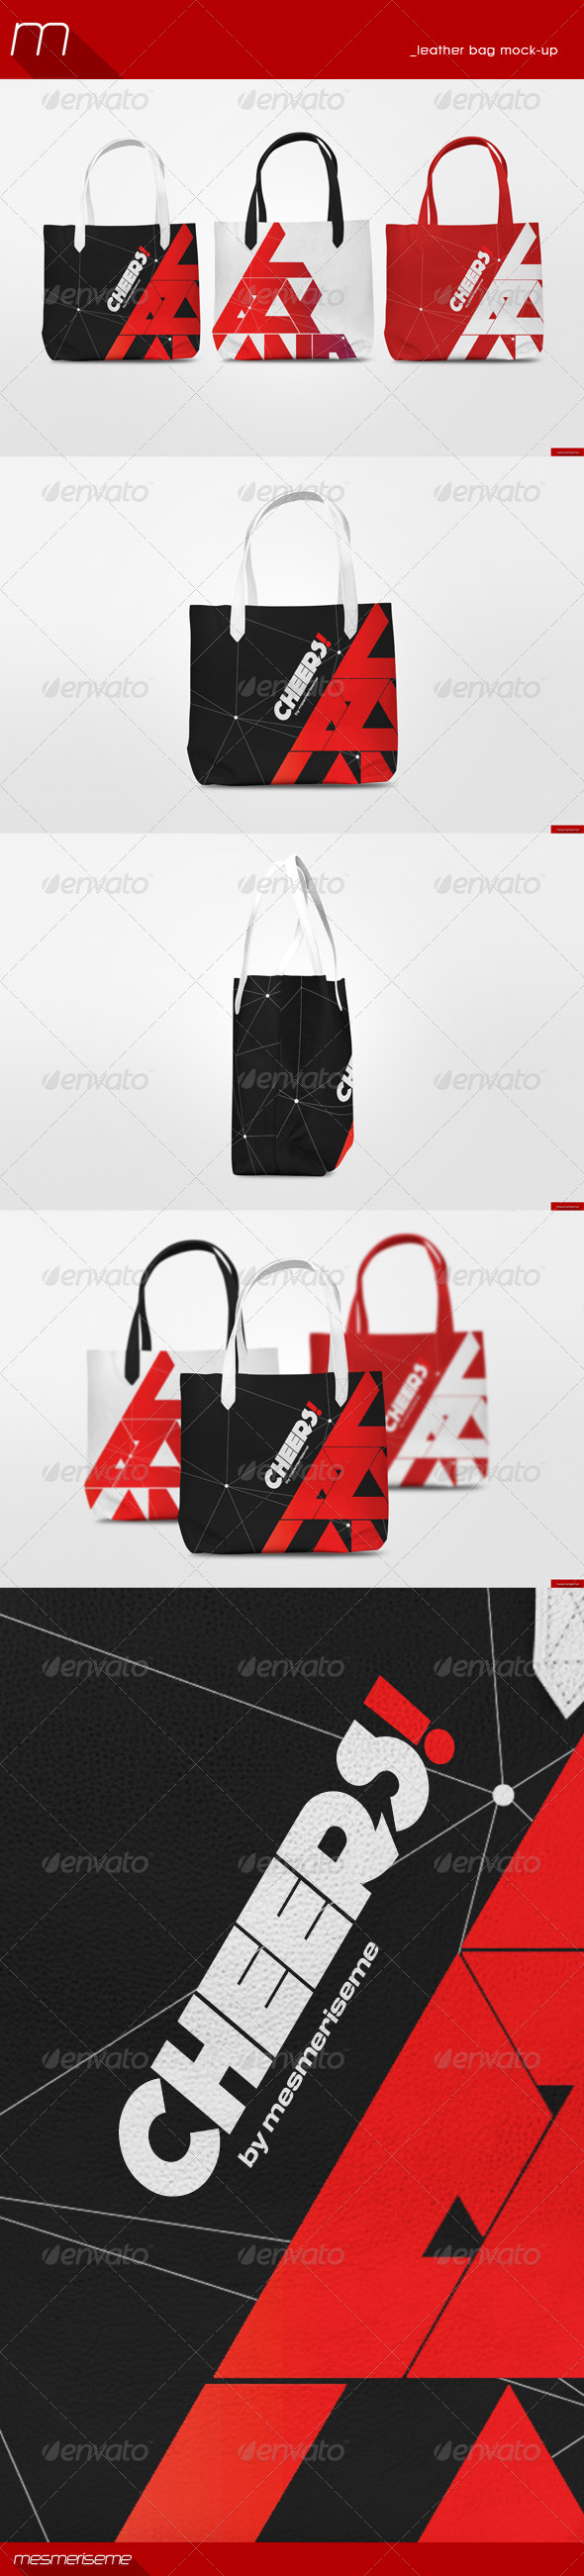 GraphicRiver Leather Bag Mock-Up 8751687